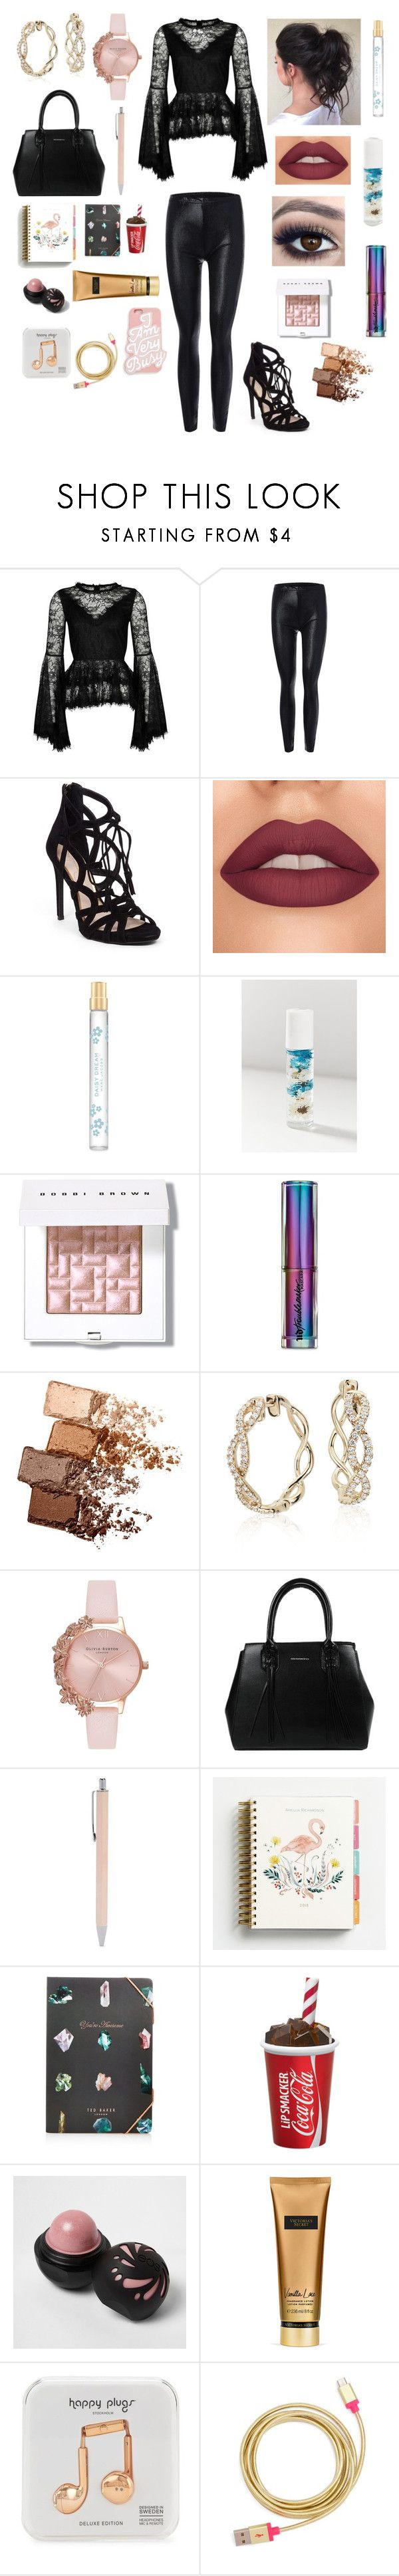 """""""FIRST DAY OF WORK"""" by drawsomething21496 ❤ liked on Polyvore featuring Jessica Simpson, Marc Jacobs, Blossom, Bobbi Brown Cosmetics, Urban Decay, Maybelline, Olivia Burton, Forever 21, Ted Baker and River Island"""